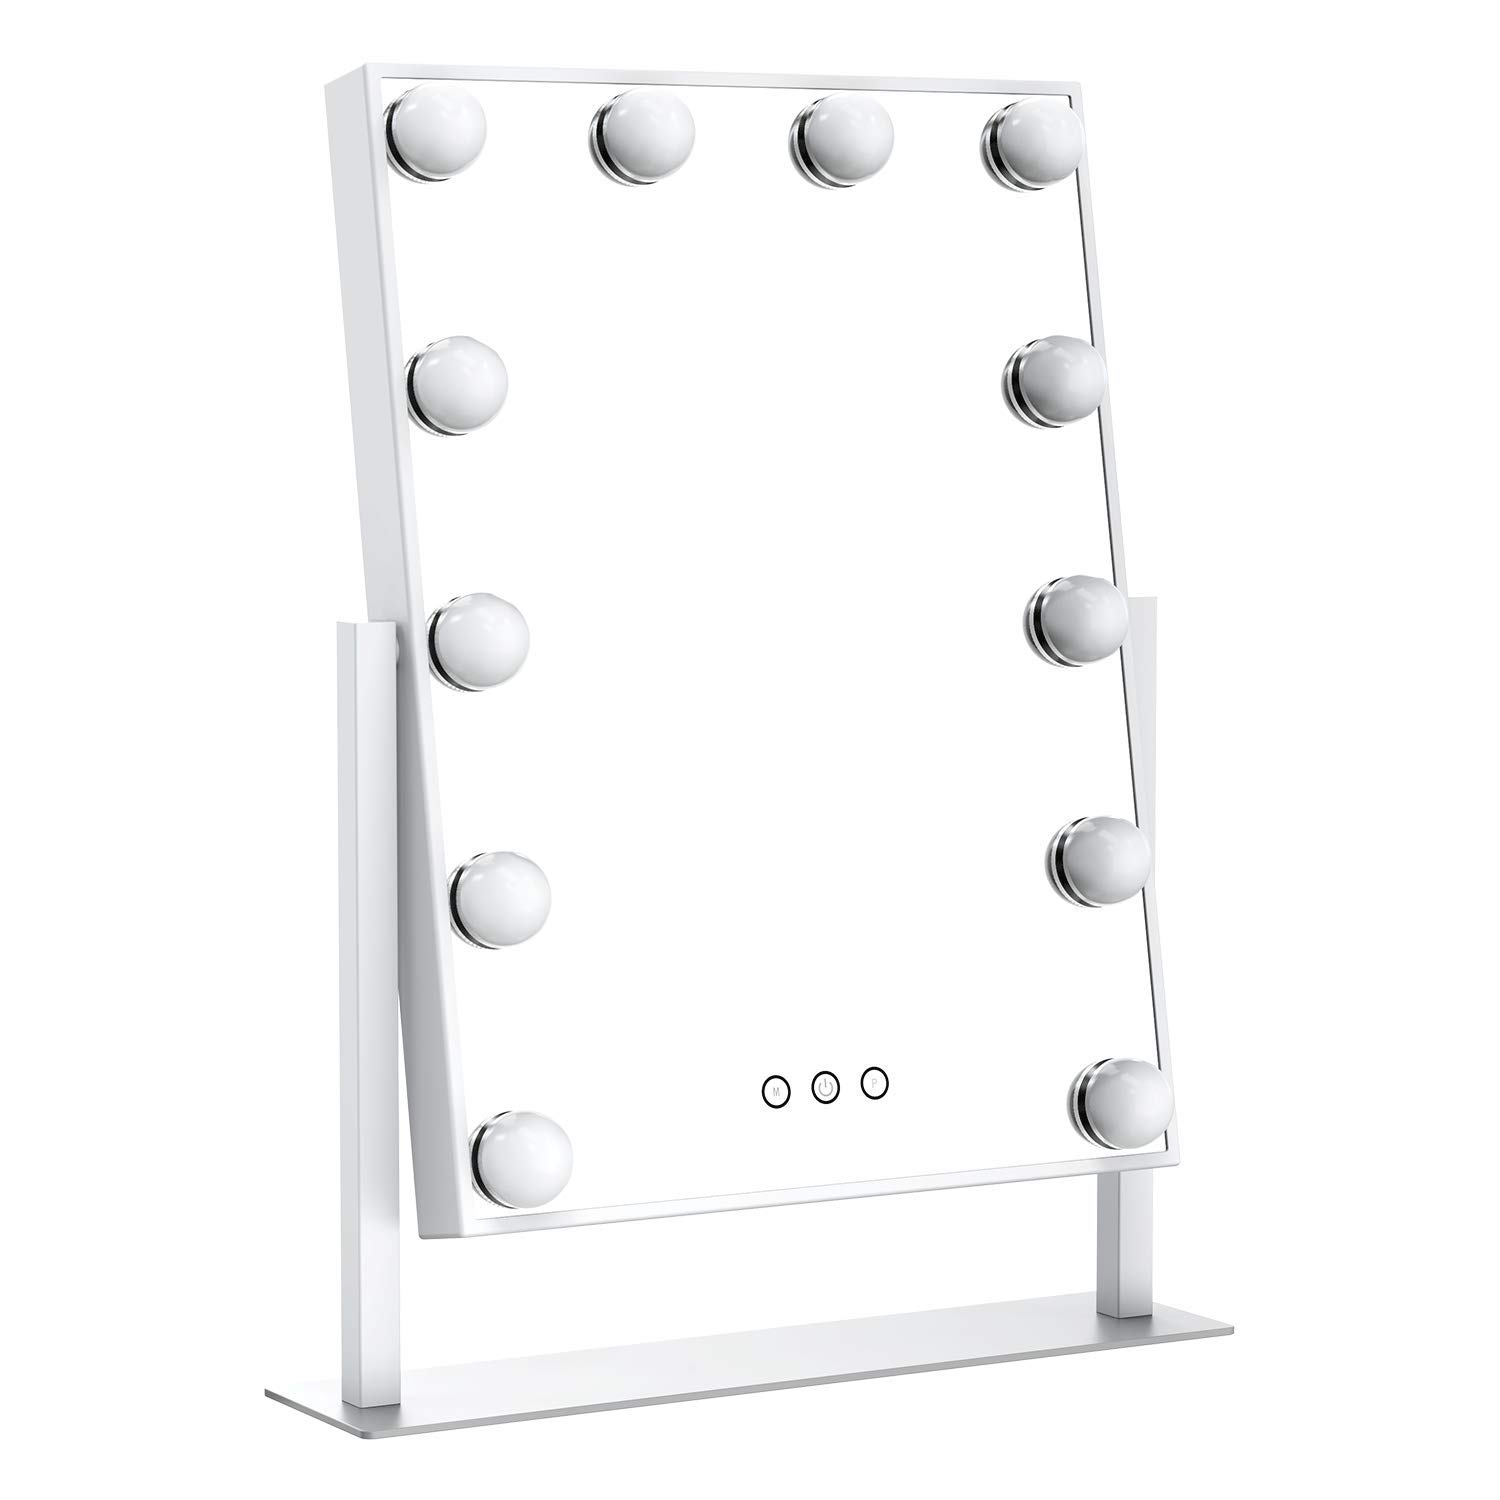 Ovonni Lighted Vanity Makeup Hollywood Mirror, Dimmable Tabletop Cosmetic Mirror with LED Bulbs, Touch Control and Plug Powered (12 Blubs, White)